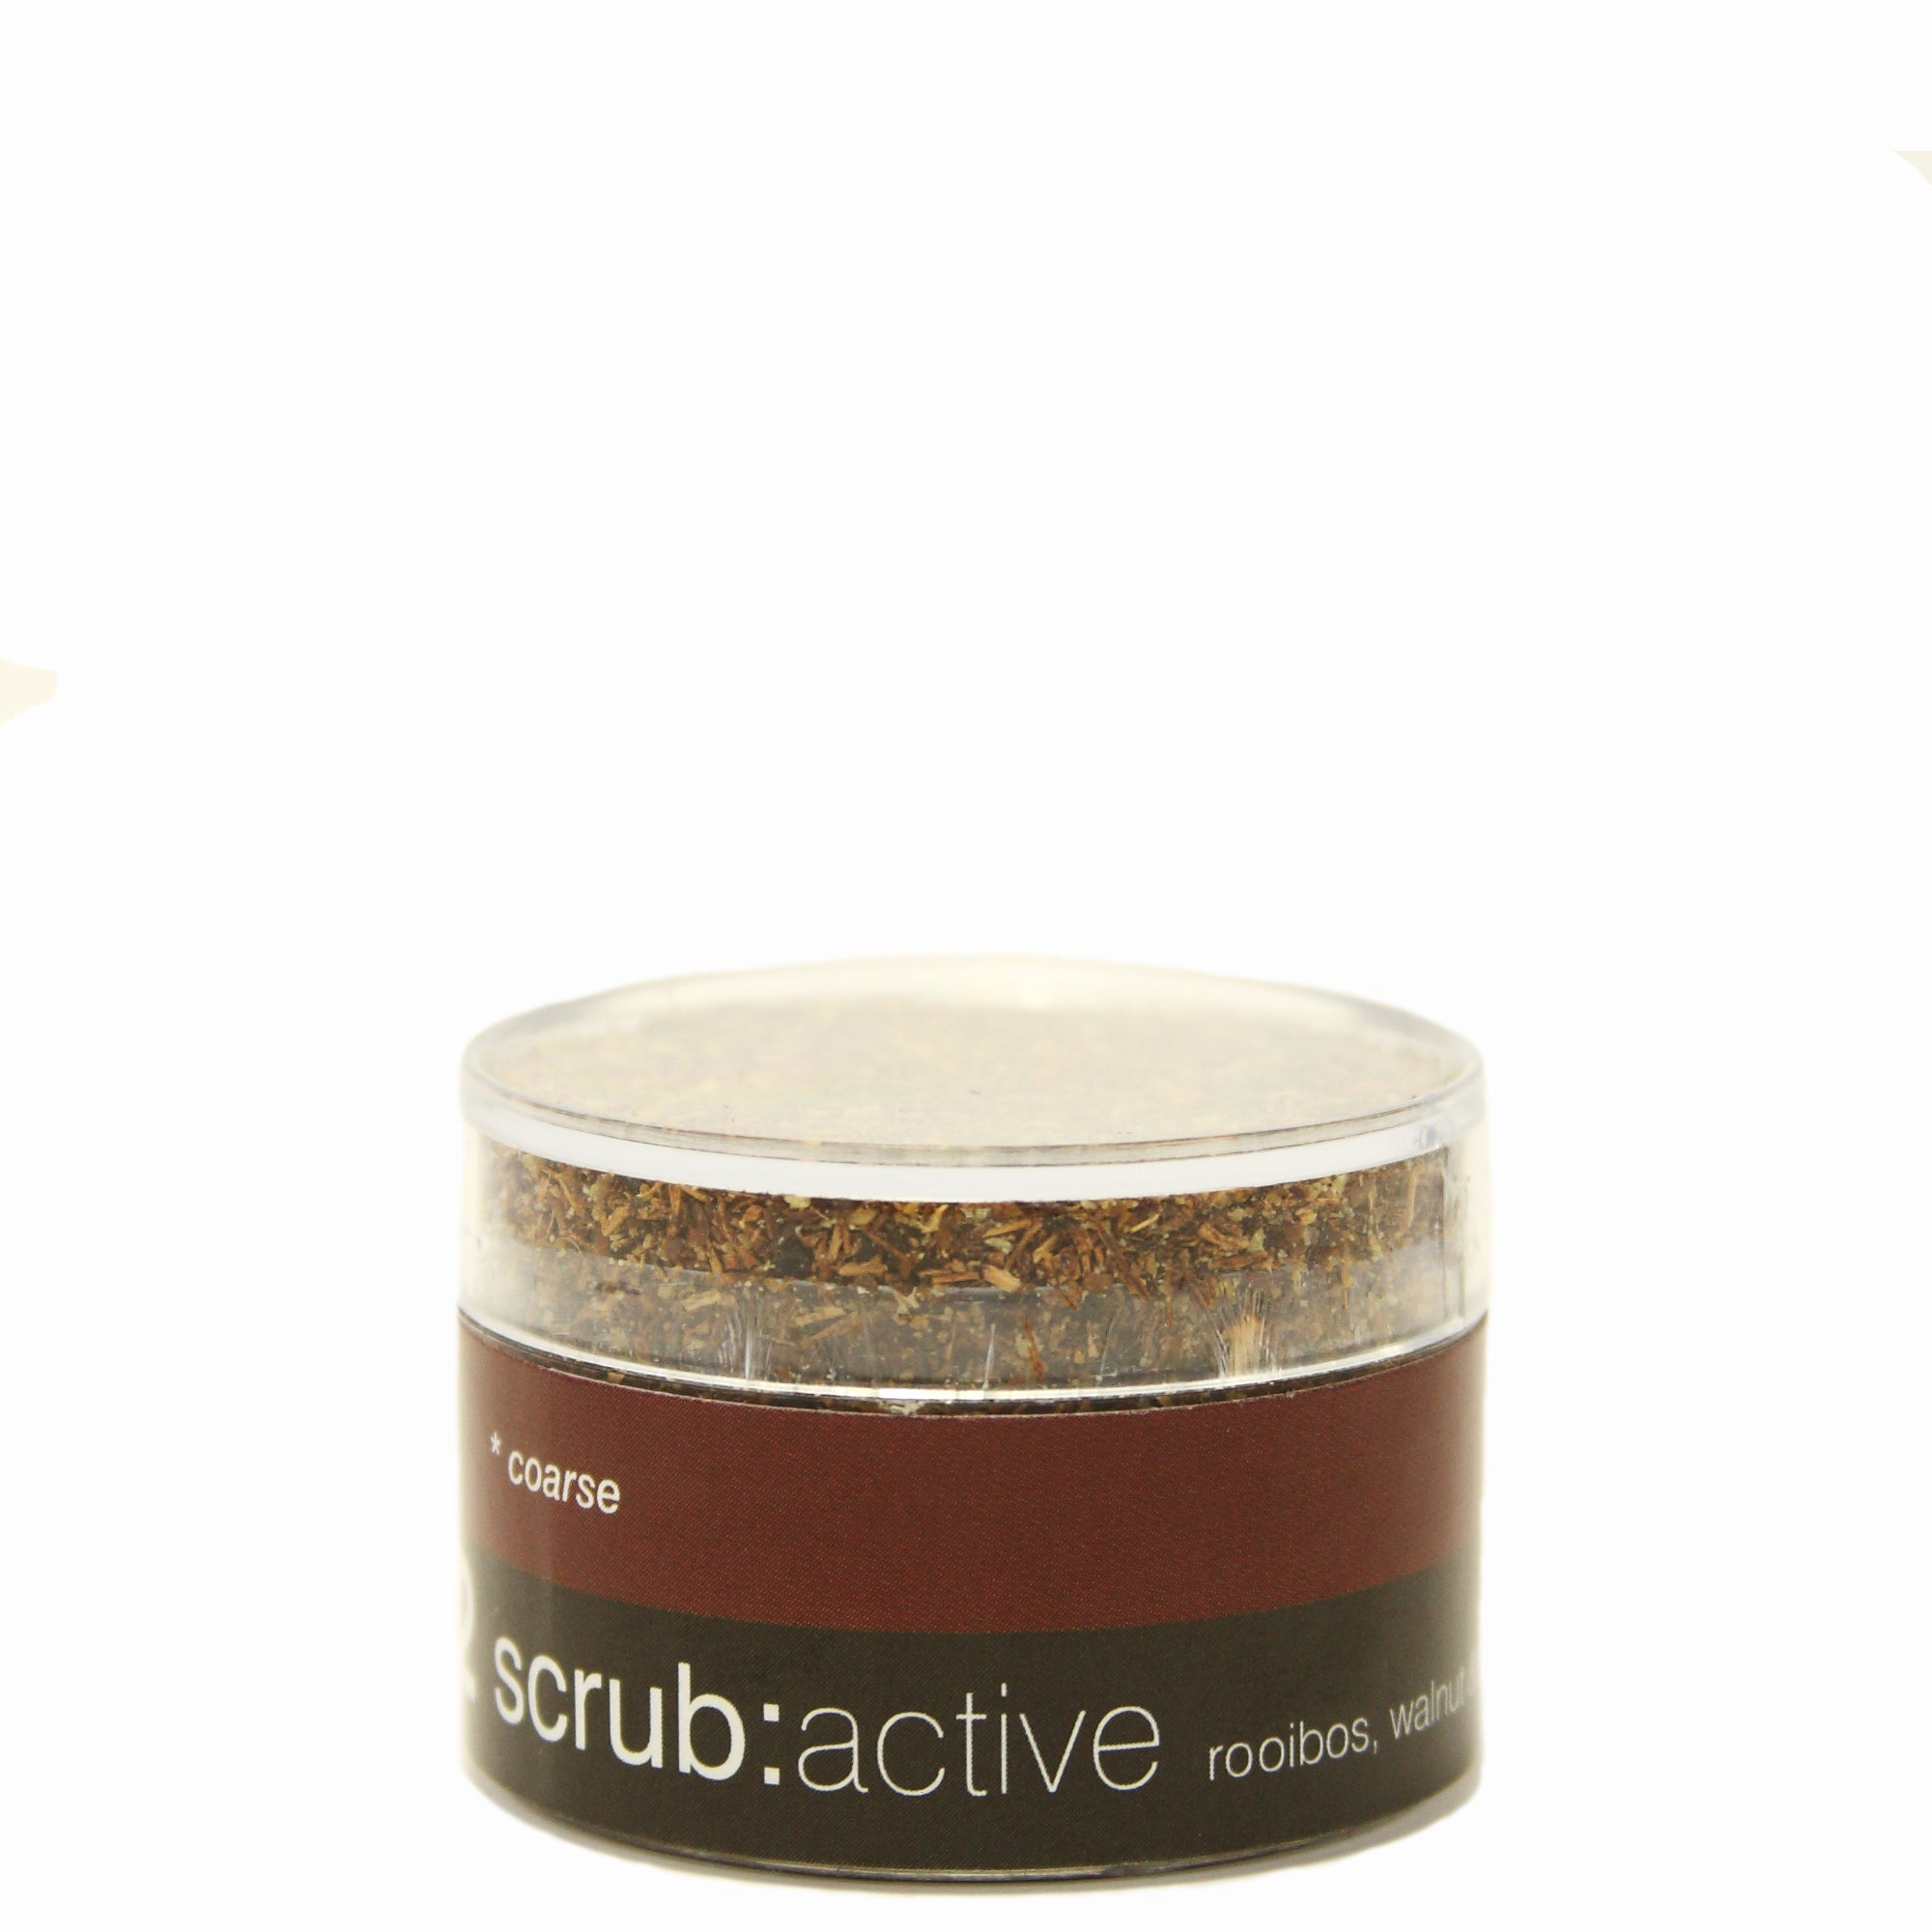 rooibos, walnut and rosehip scrub active